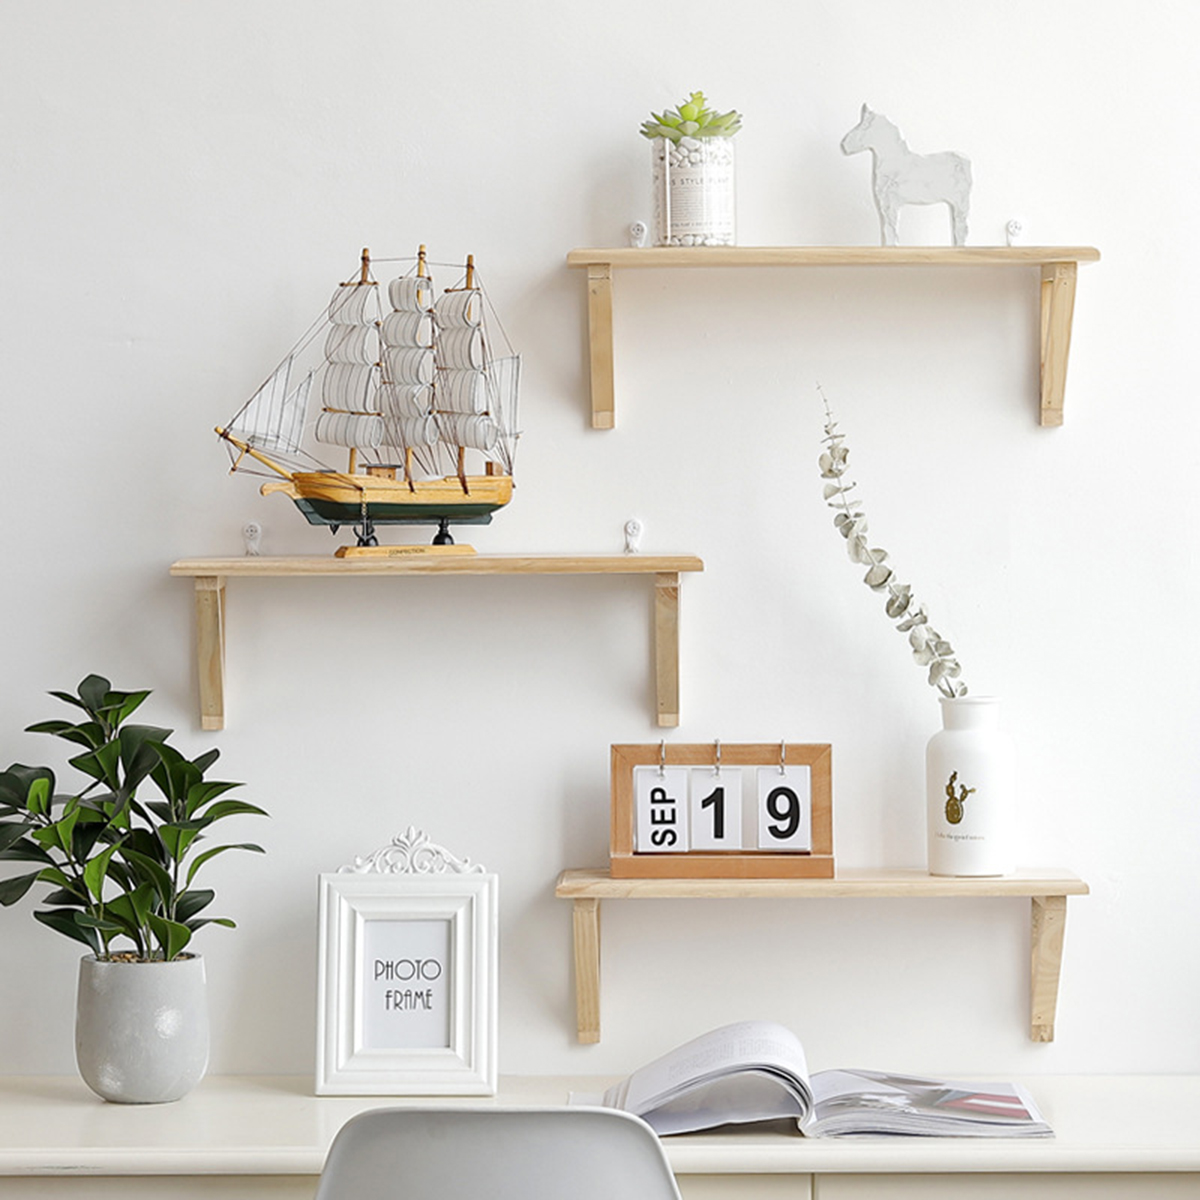 1 Pc Wall Shelf Solid Wood Decorative Storage Rack Bookshelf Hanging Storage Shelf Rack For Home And Living Room Decoration